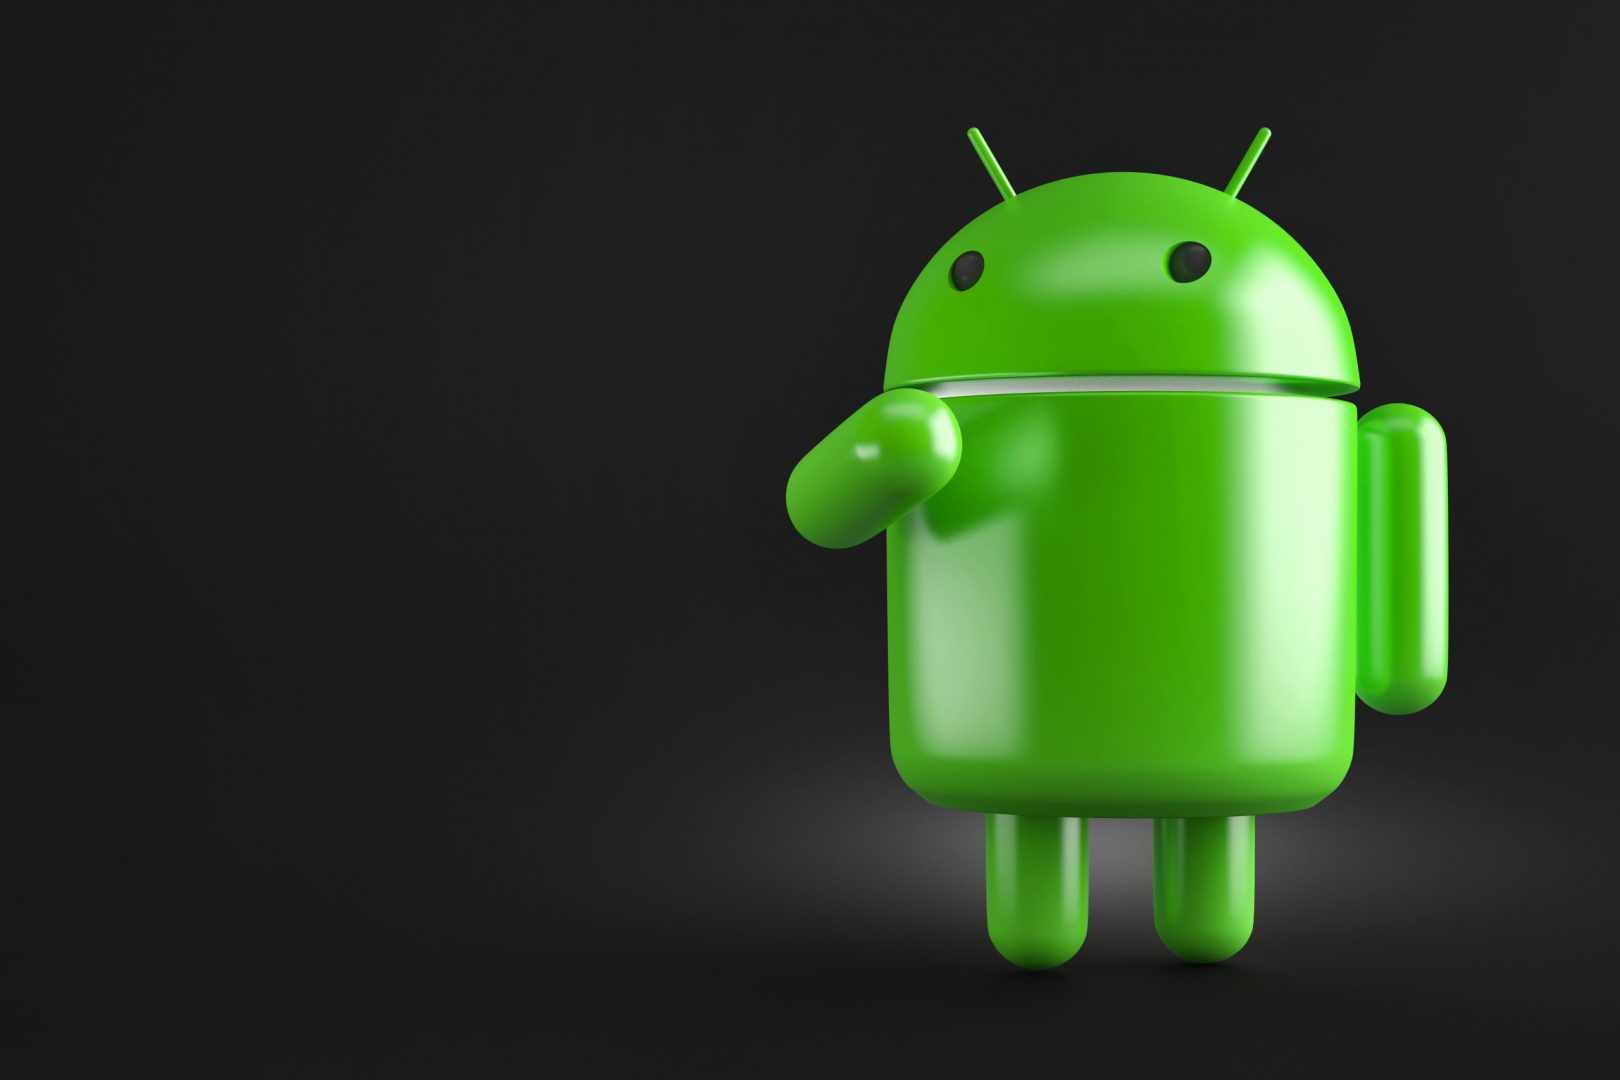 Tutorial Instalar ROM Oficial Android 4.3 en Galaxy Note 2